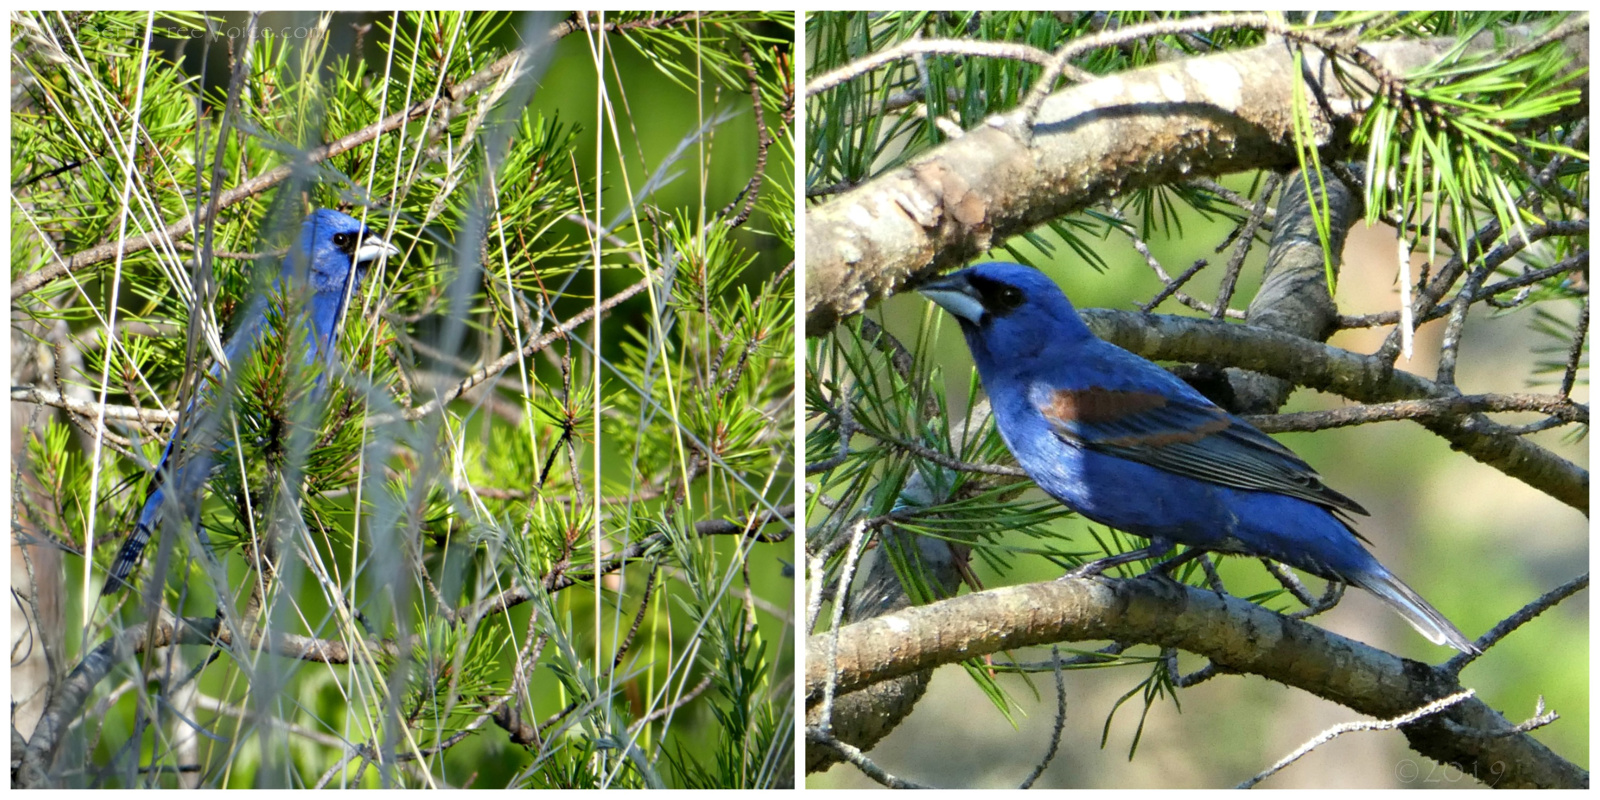 May 25, 2019 - Blue Grosbeak in Bent Tree